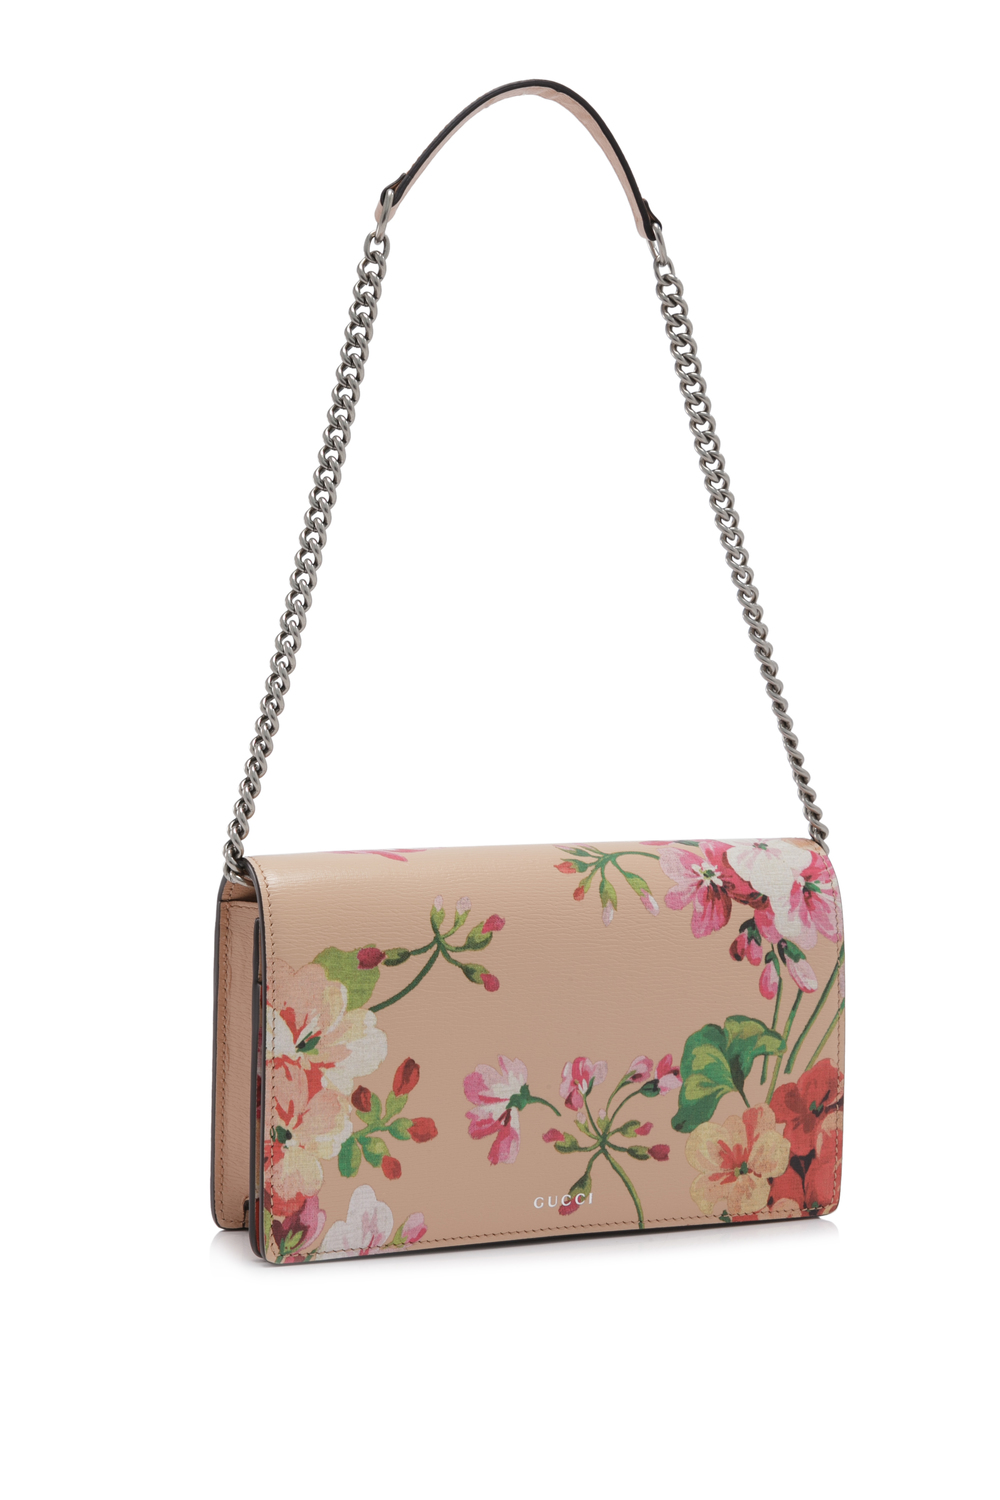 Gucci Blooms Leather Chain Wallet (02).jpg